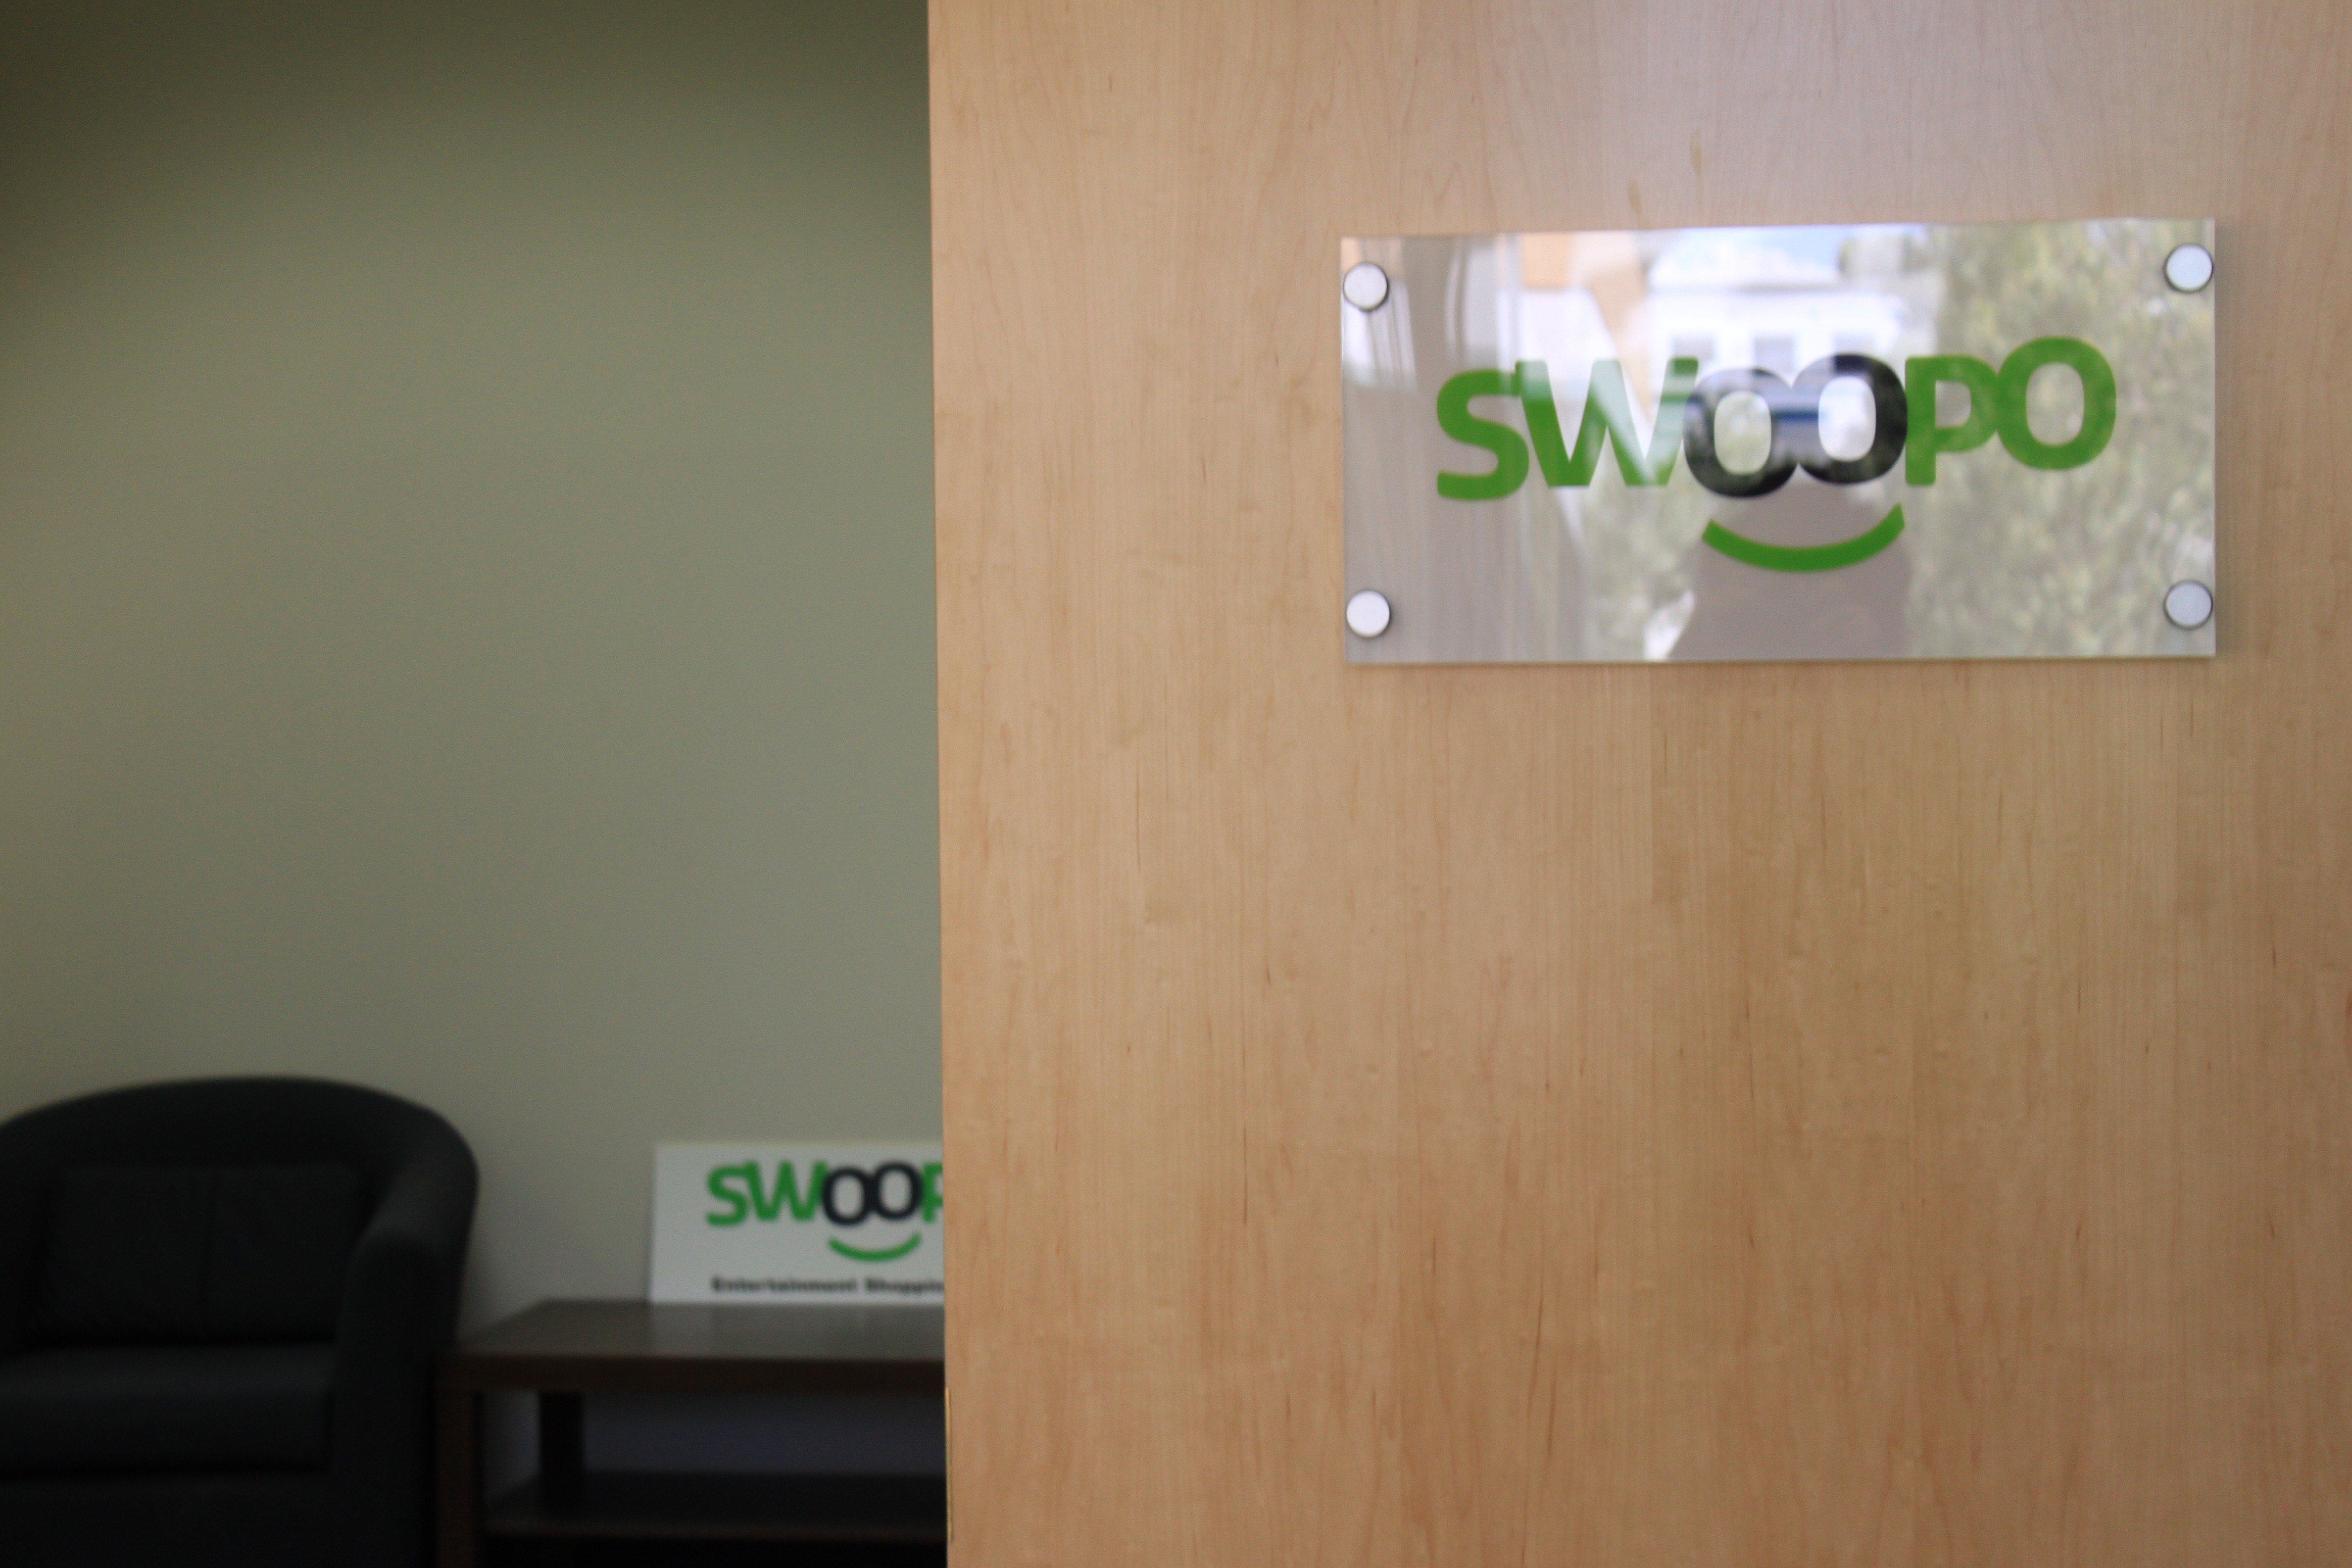 Swoopo's Office